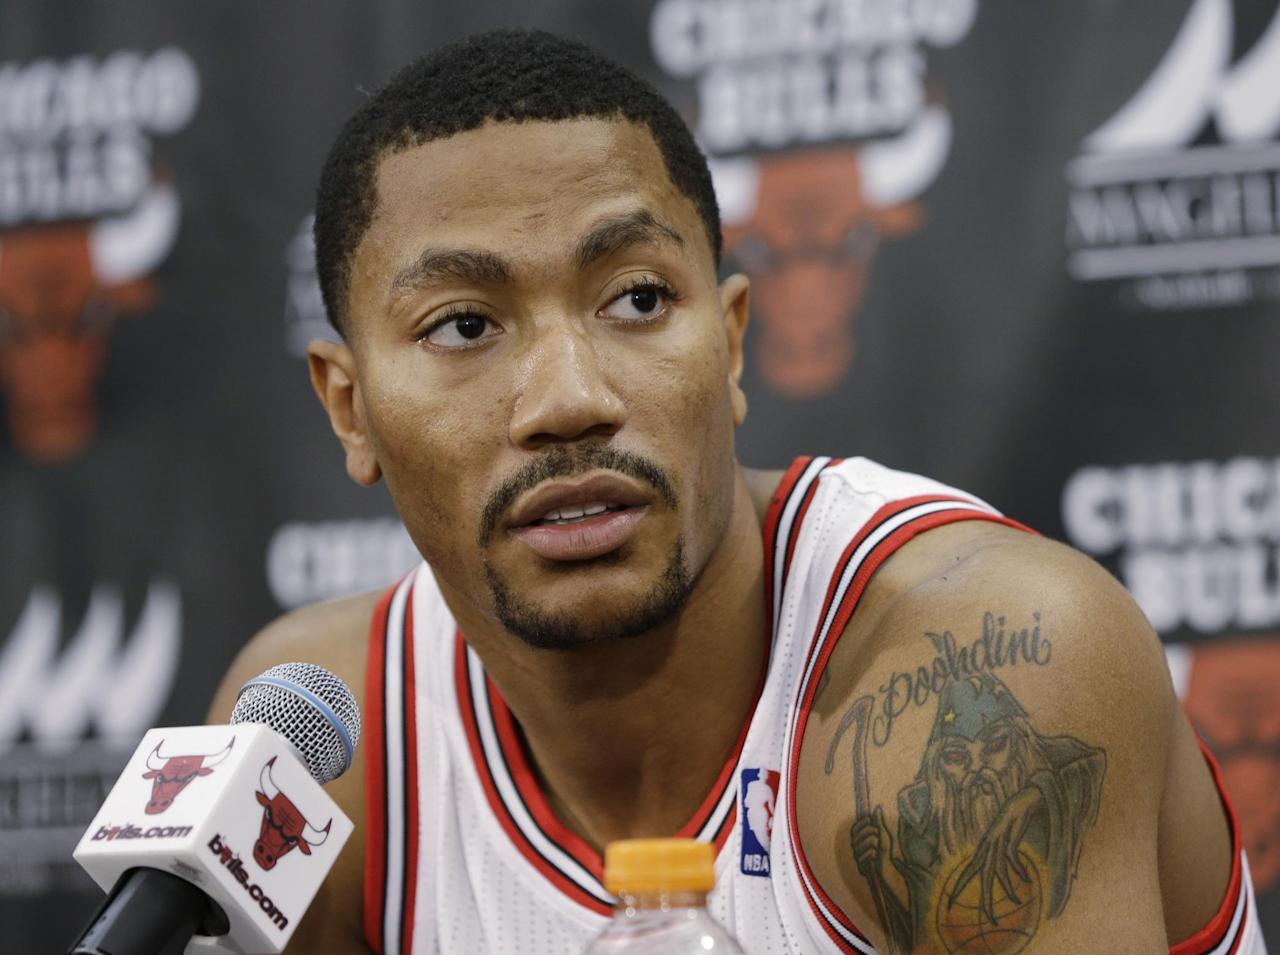 Chicago Bulls guard Derrick Rose speaks during a news conference at the NBA basketball team's media day Friday, Sept. 27, 2013, in Deerfield, Ill. Rose missed last season after tearing an ACL in a playoff game in 2012. (AP Photo/Nam Y. Huh)